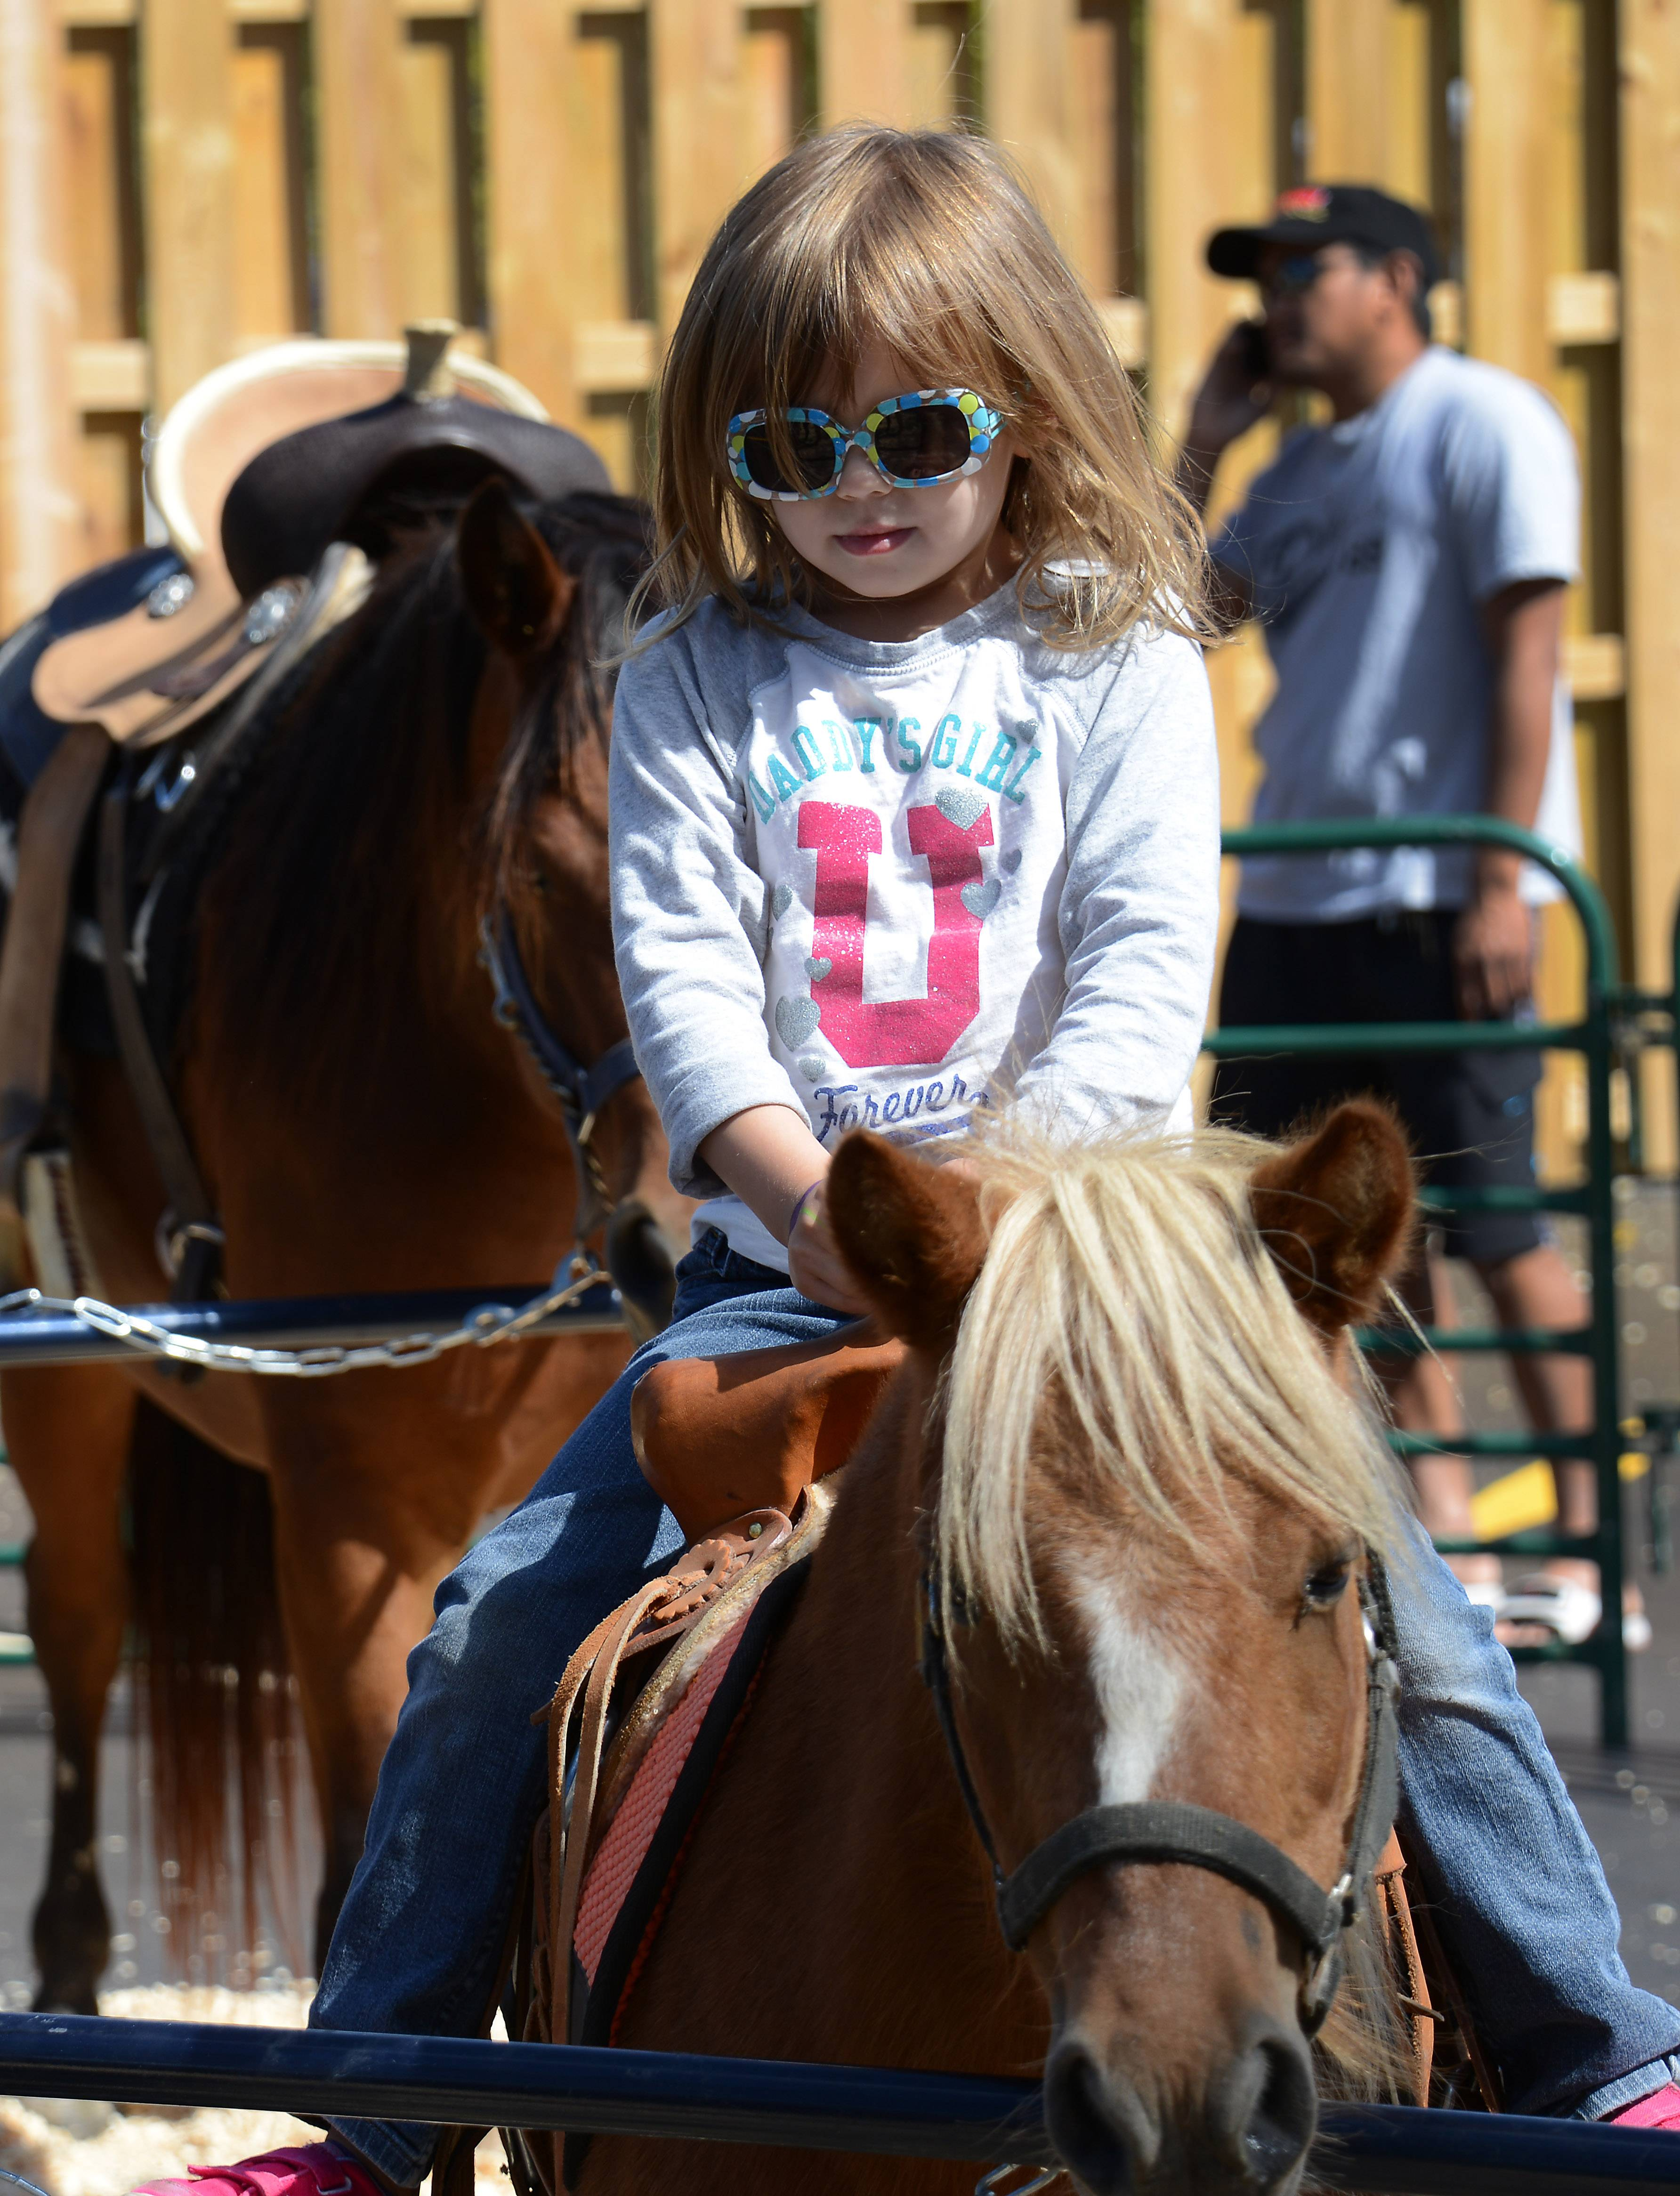 A Kids' Fest is a highlight of this weekend's Bartlett Heritage Days.